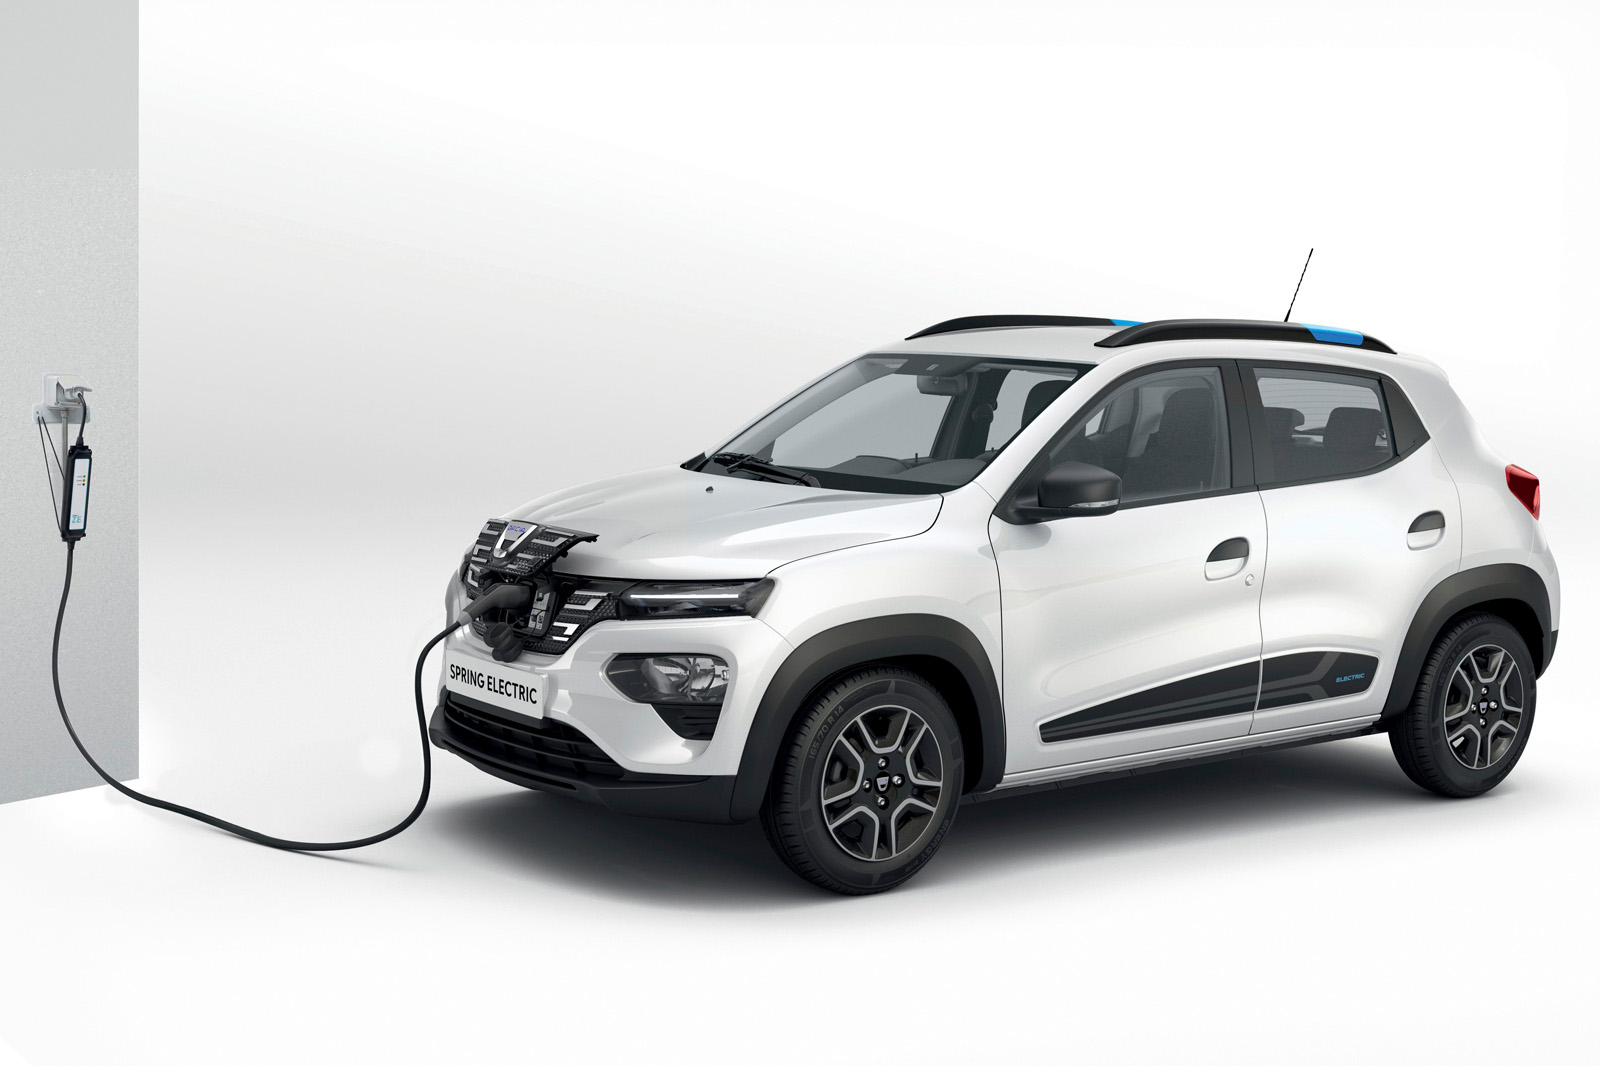 The gas-powered Renault Kwid hatchback hit the Indian market in 2015, made it to South America two years later and finally reached China last year as the all-electric Renault City K-ZE. Soon, the model will reach Europe and once again change its badge, this time to Dacia Spring.